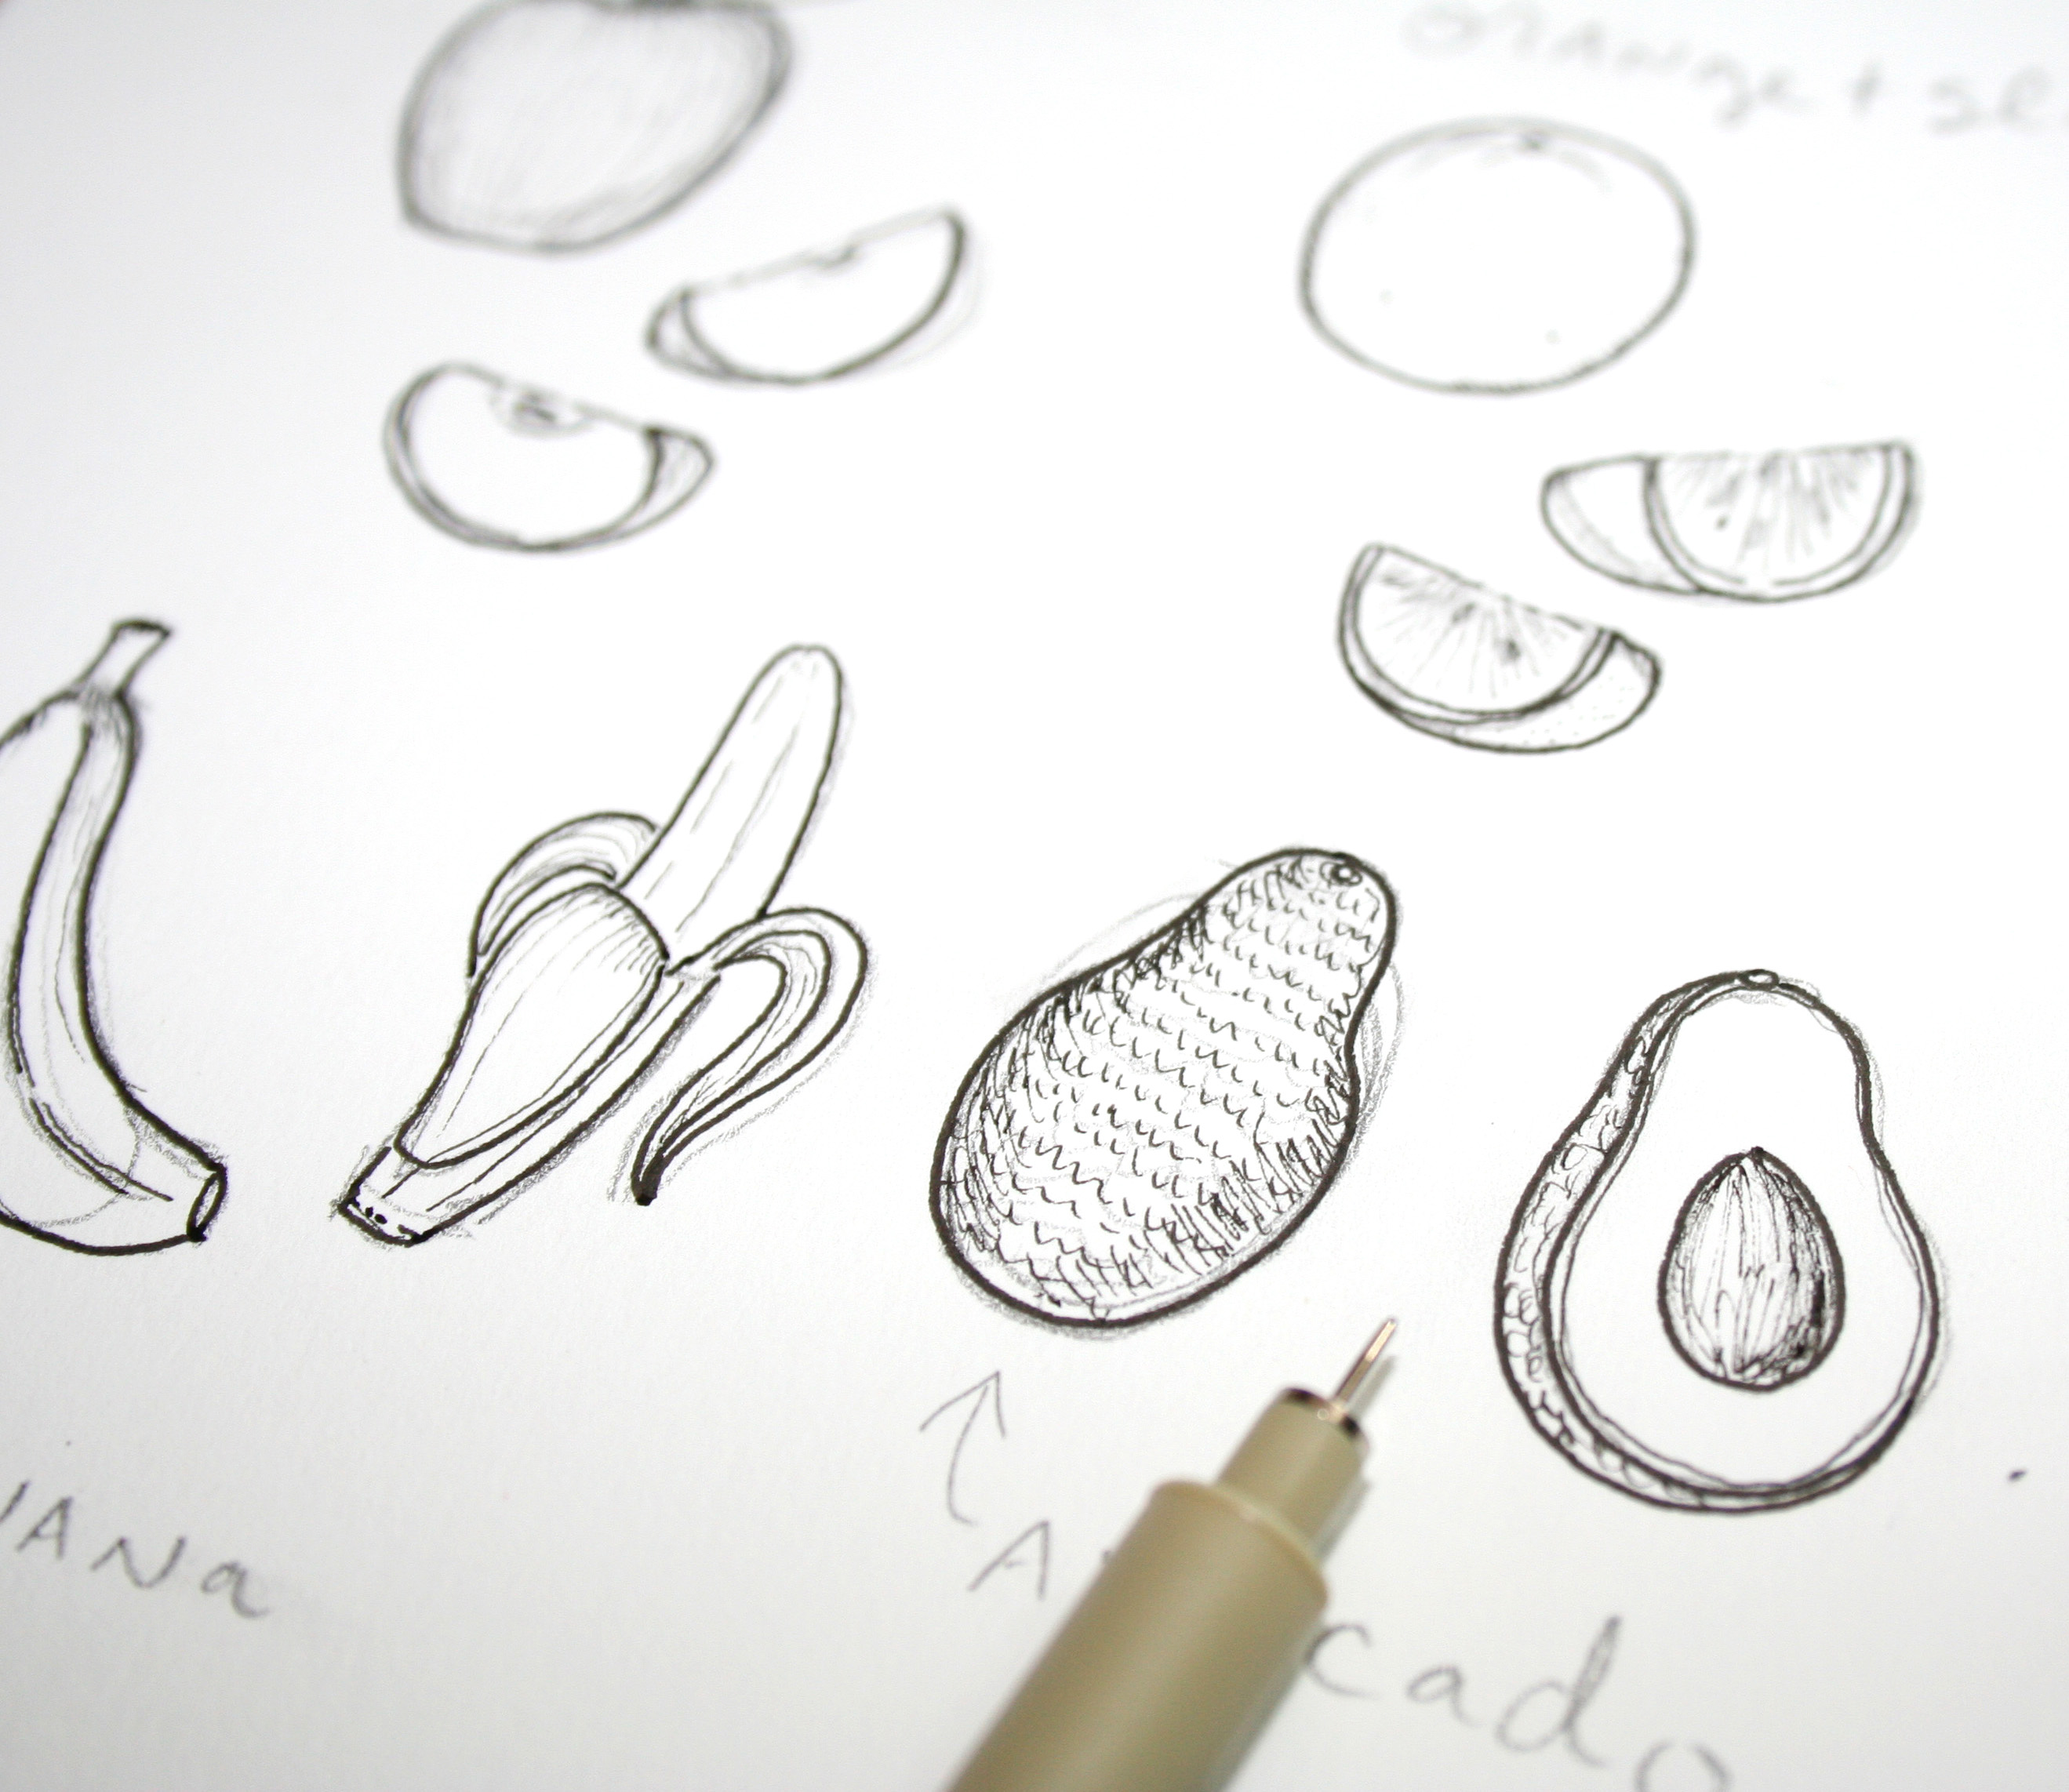 Drawn vegetable realistic How to pen Your Draw